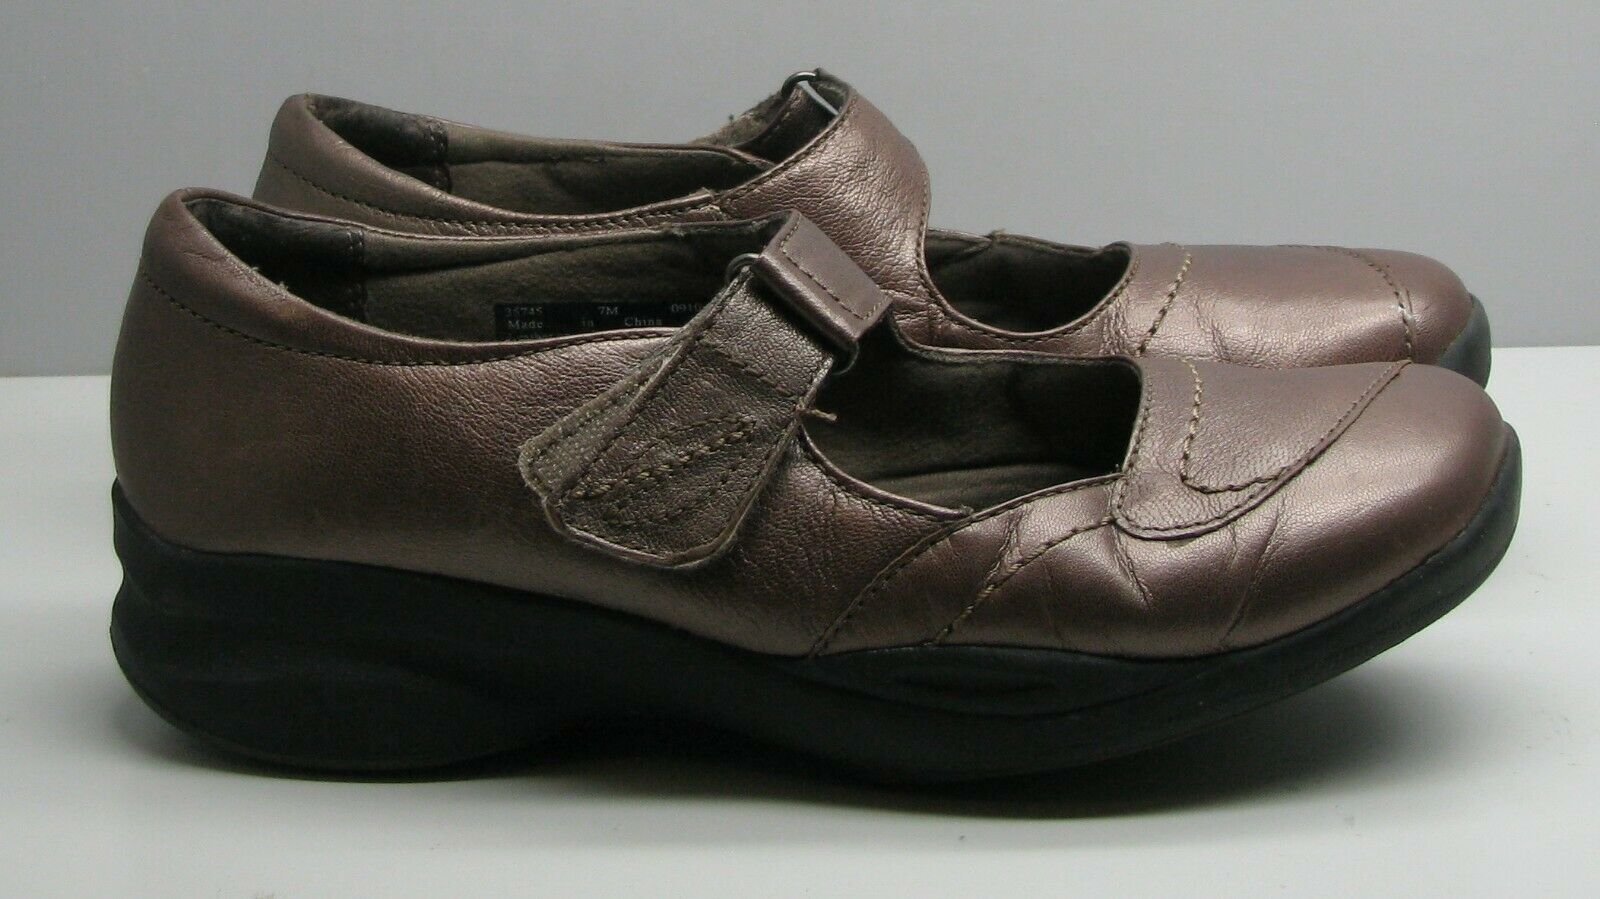 SHOES Clarks In Motion Woman's 7 M Bronze Metallic Leather Mary Jane's